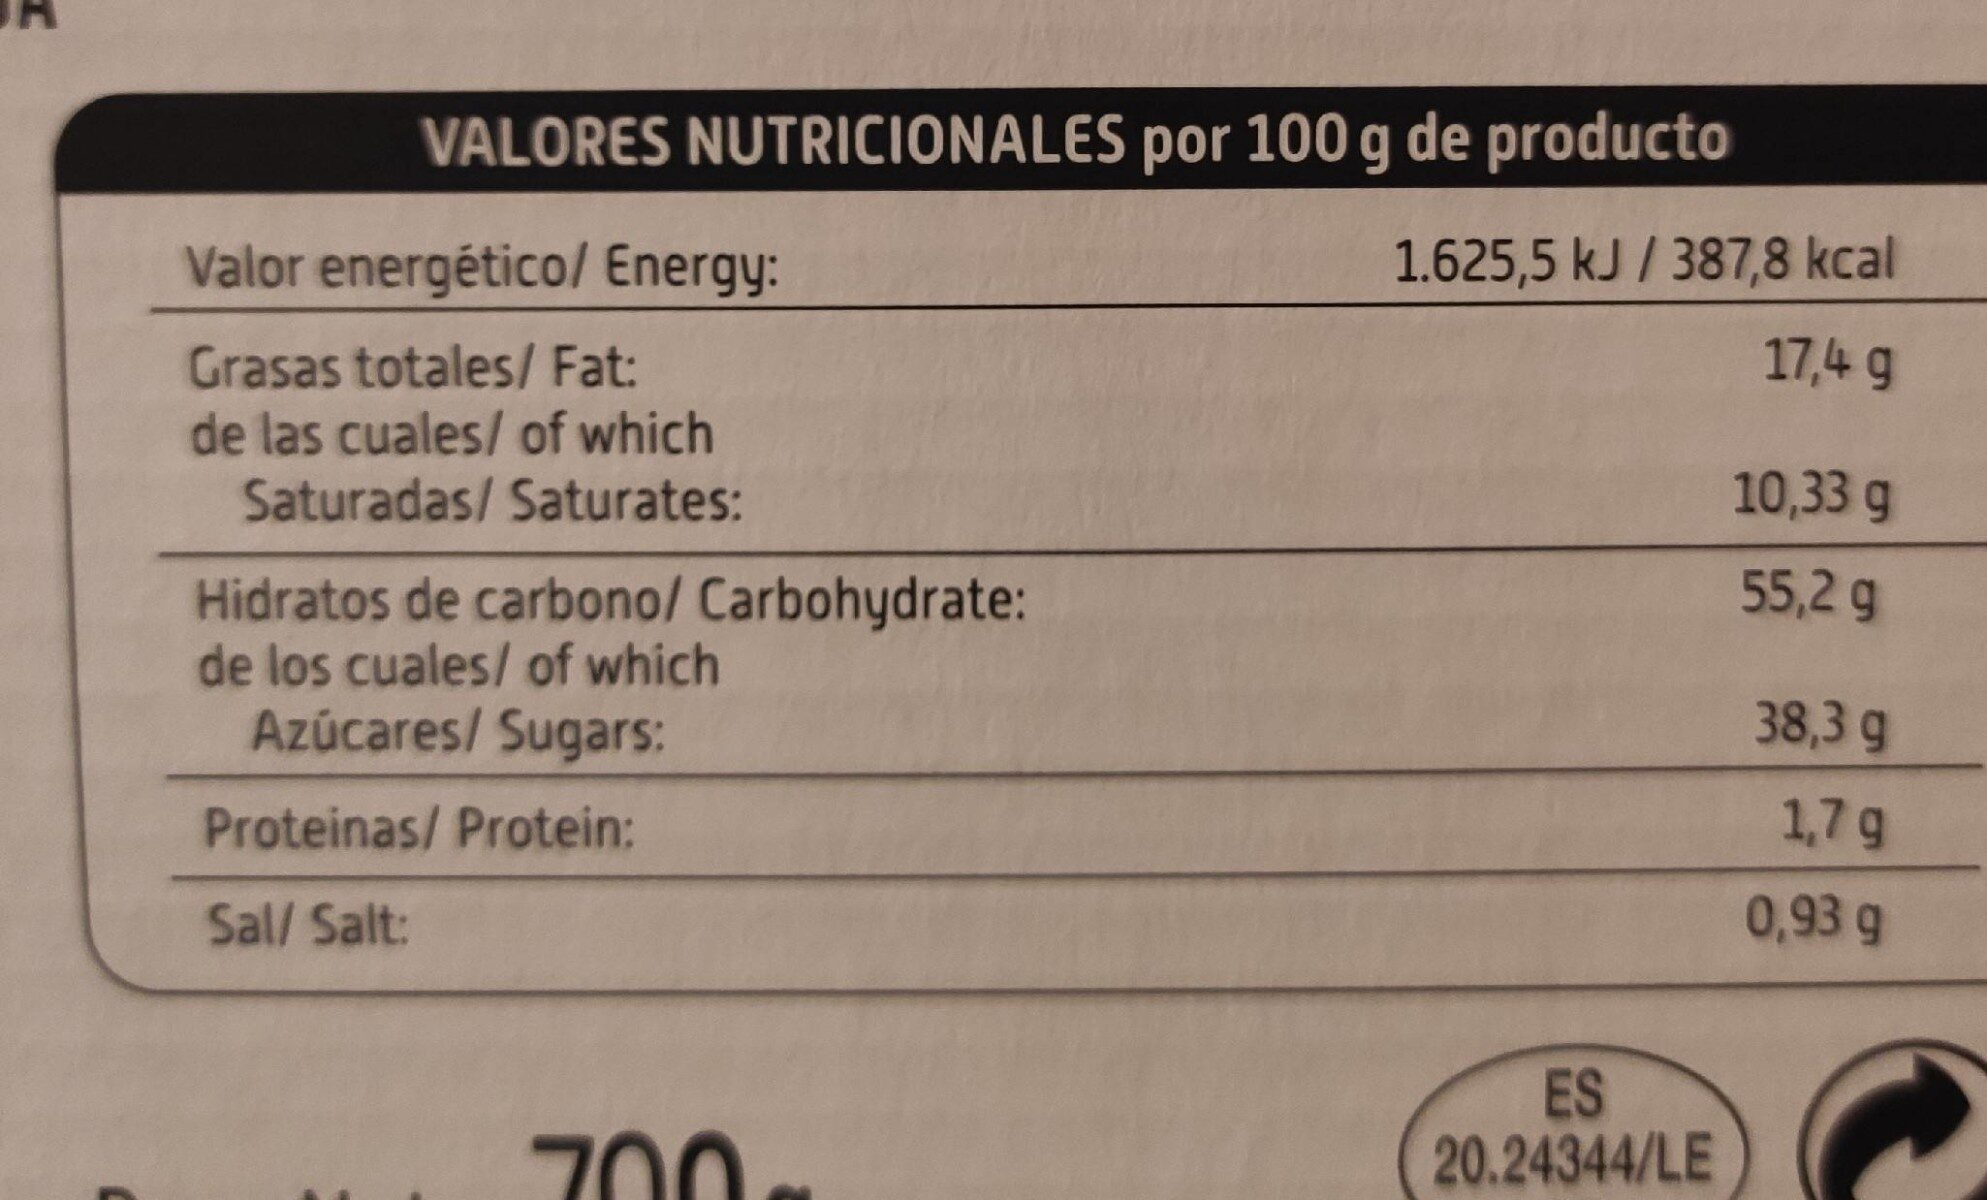 Hojaldres Elaboracion Artesana - Nutrition facts - es